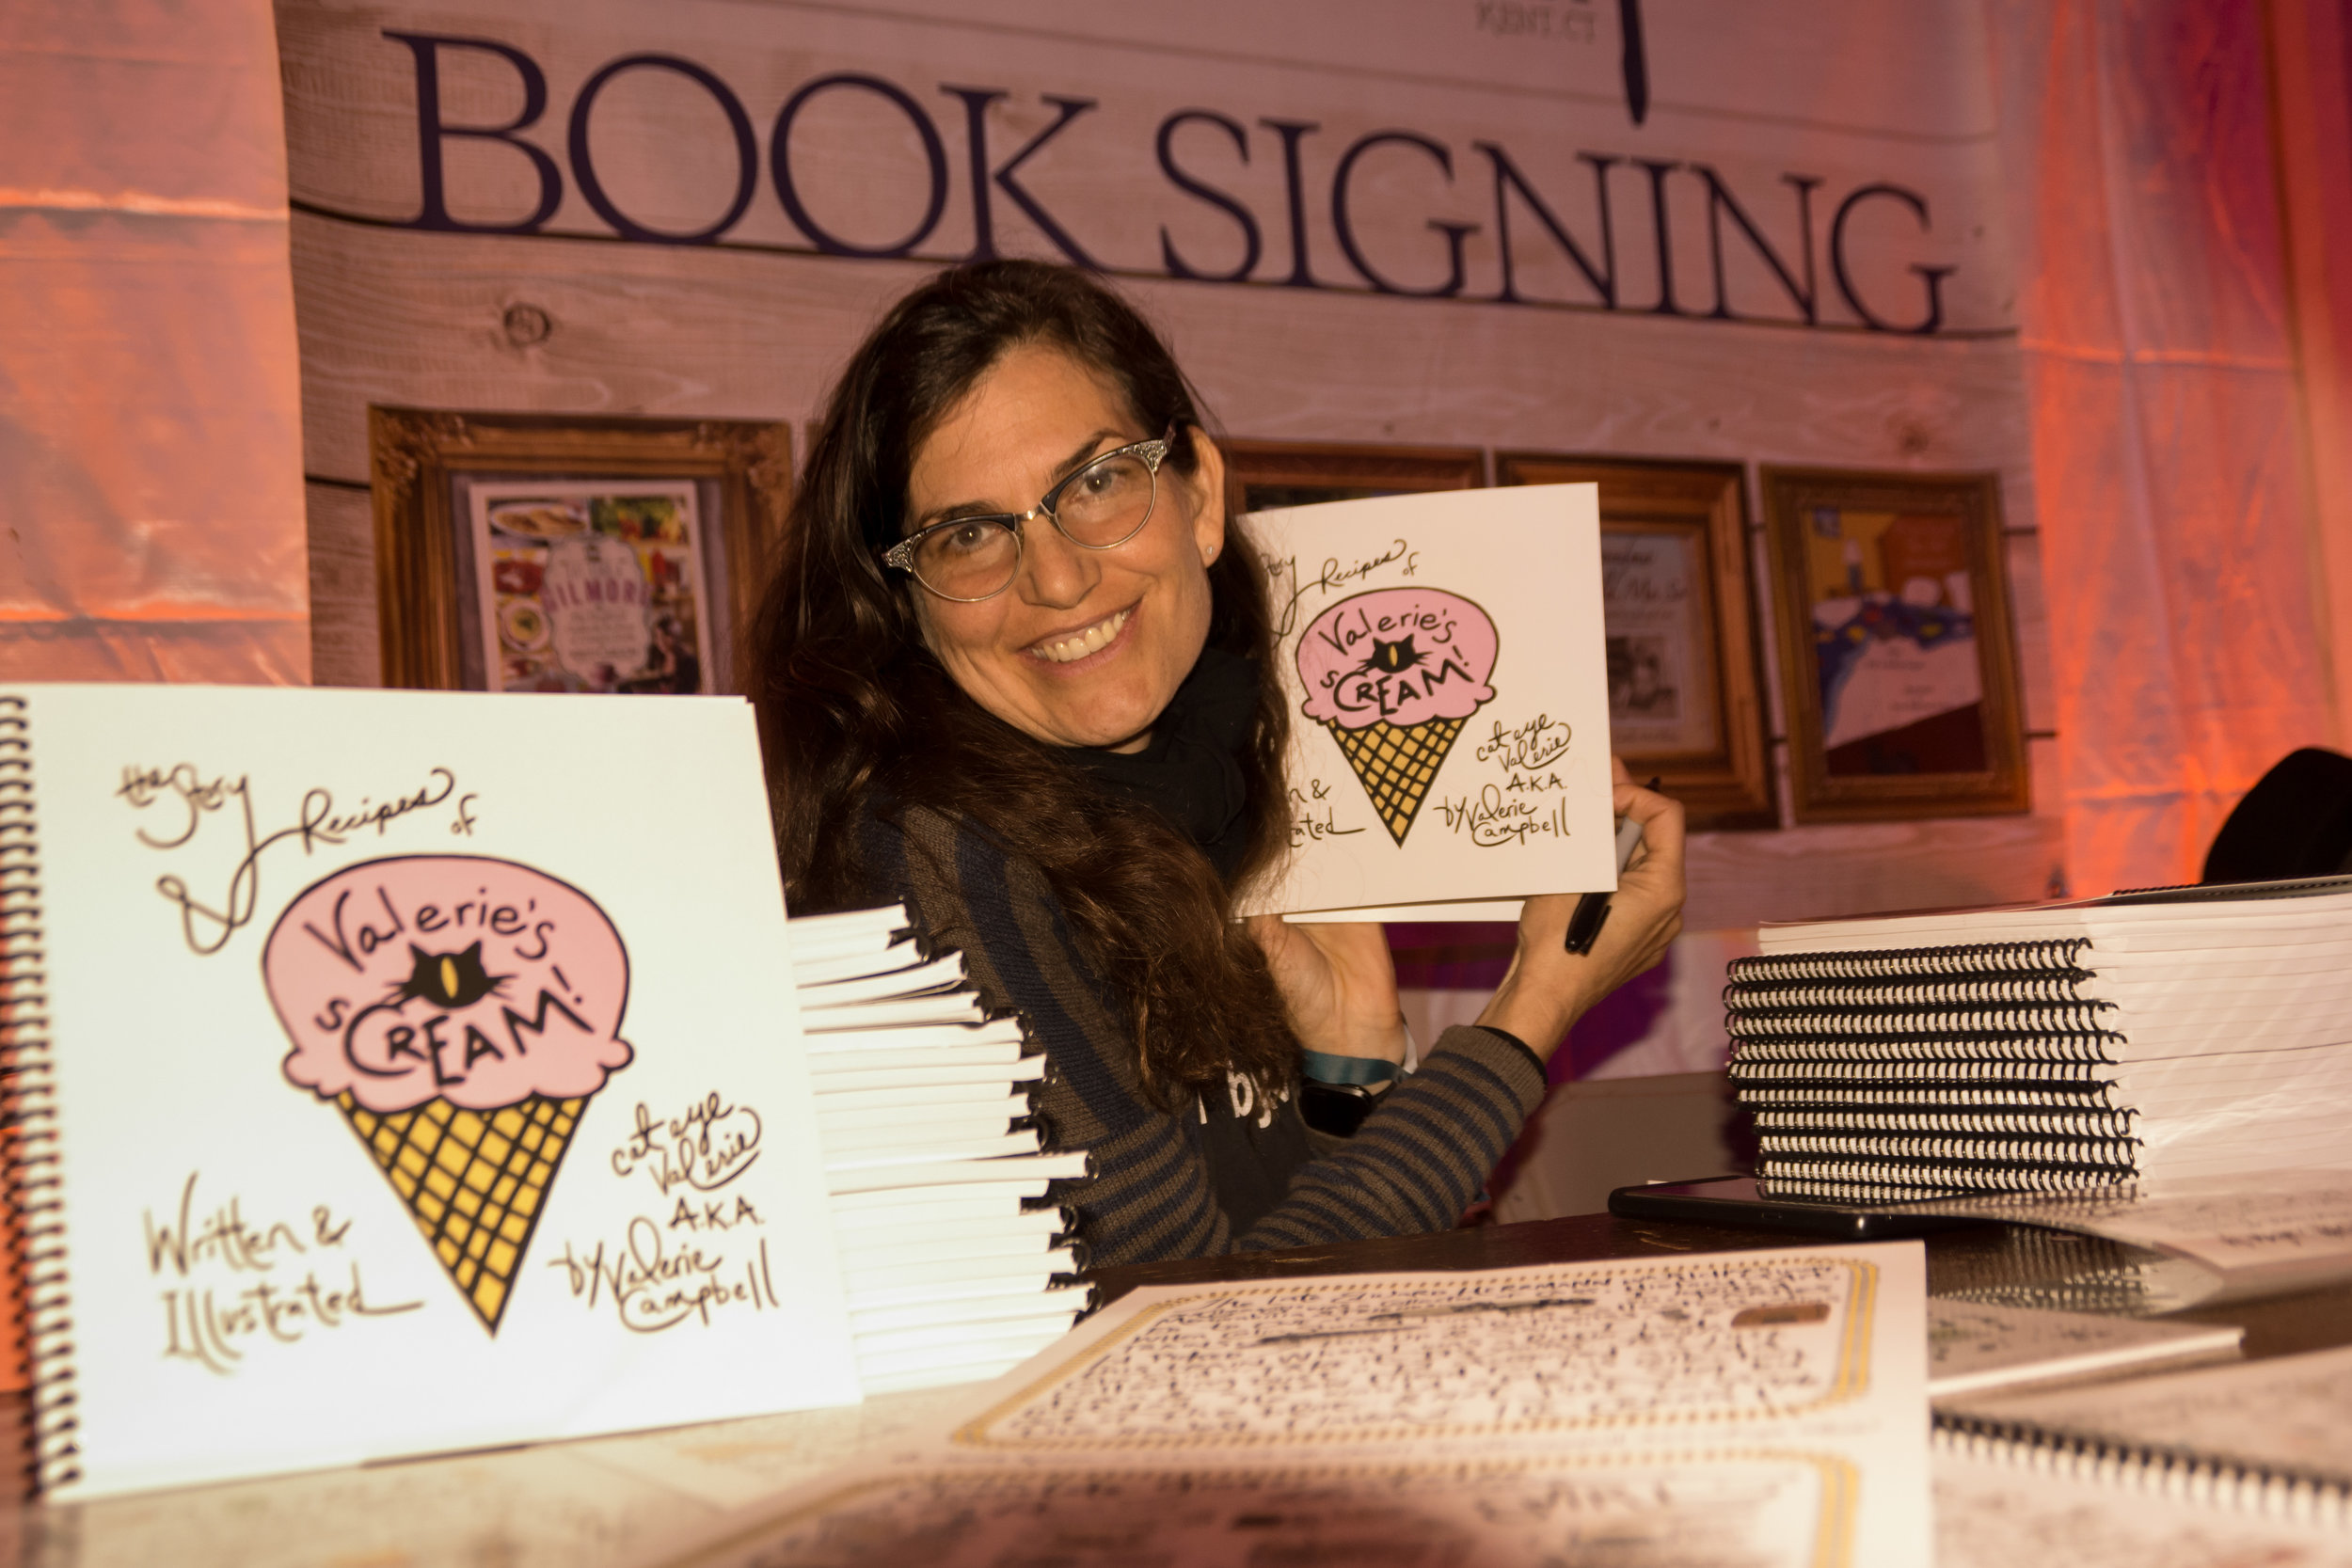 Valerie Campbell - GILMORE GIRLS COSTUMER VALERIE NOT ONLY KNOWS EVERY DETAIL OF JUST ABOUT EVERY ITEM & ACCESSORY ON SET, SHE IS AN INSANELY TALENTED ICE CREAM MAKER & PICTORIAL ICE CREAM COOKBOOK AUTHOR!